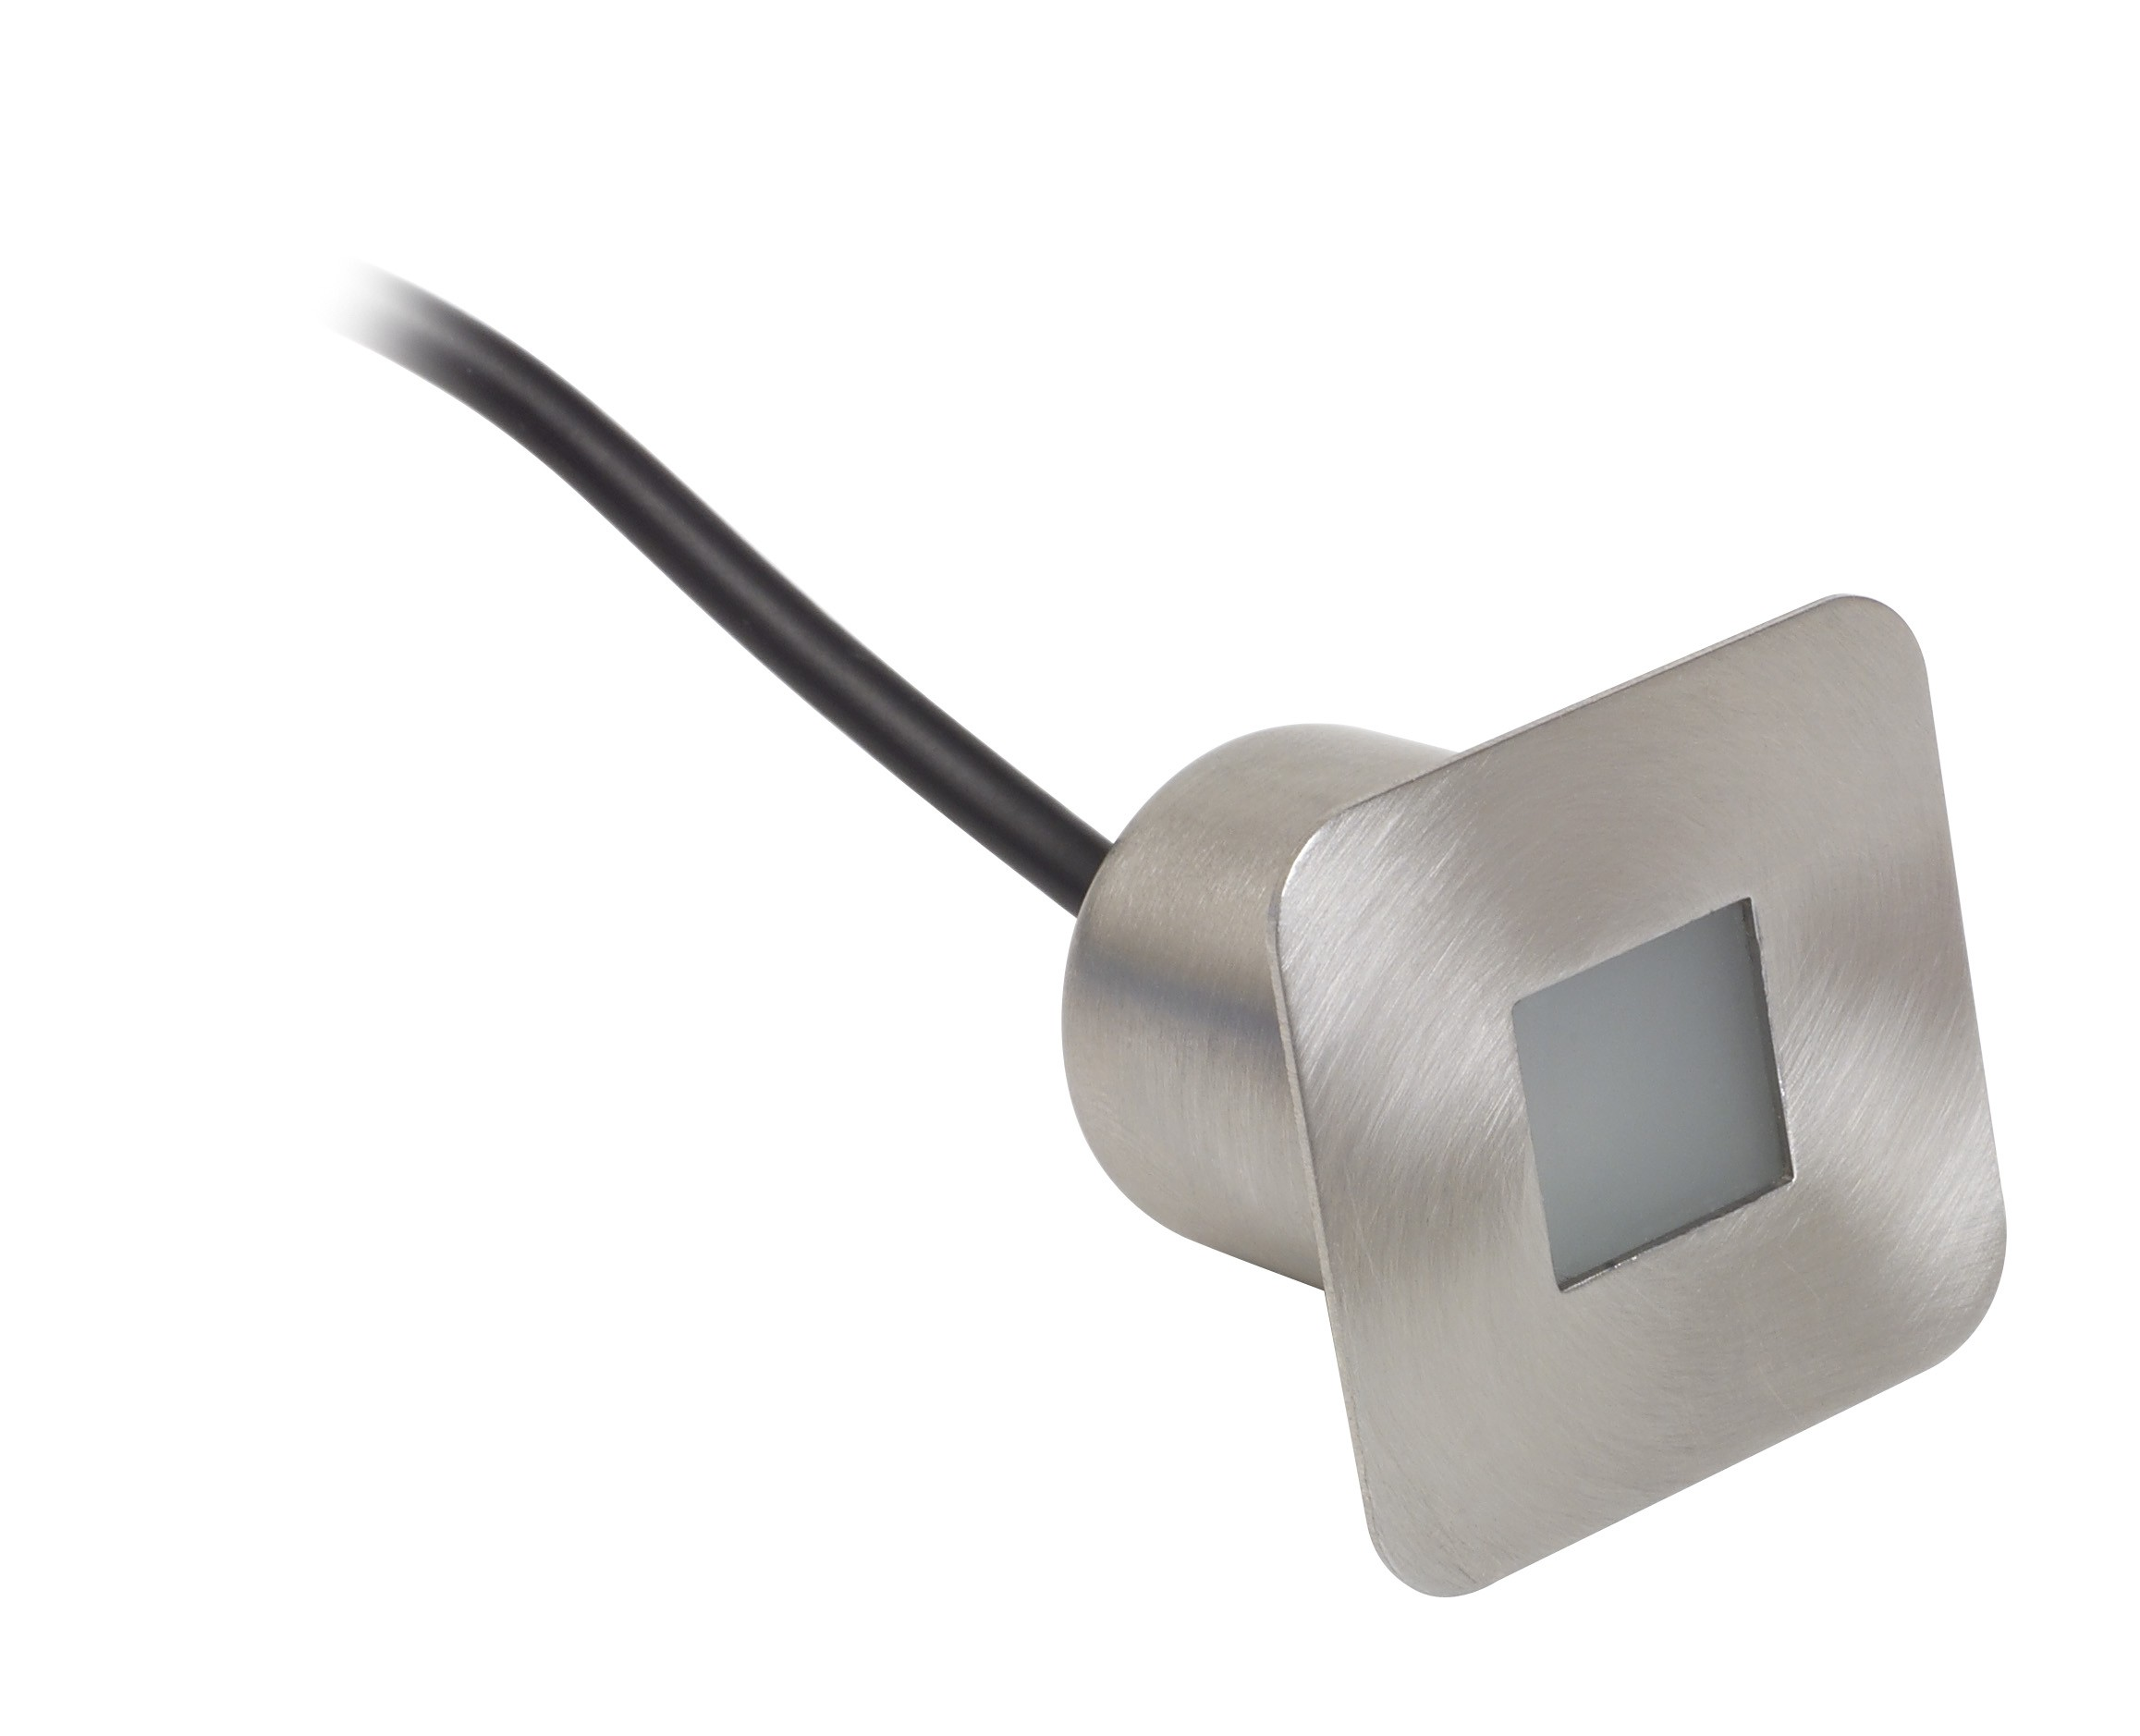 LED plinth light square head white LED stainless steel